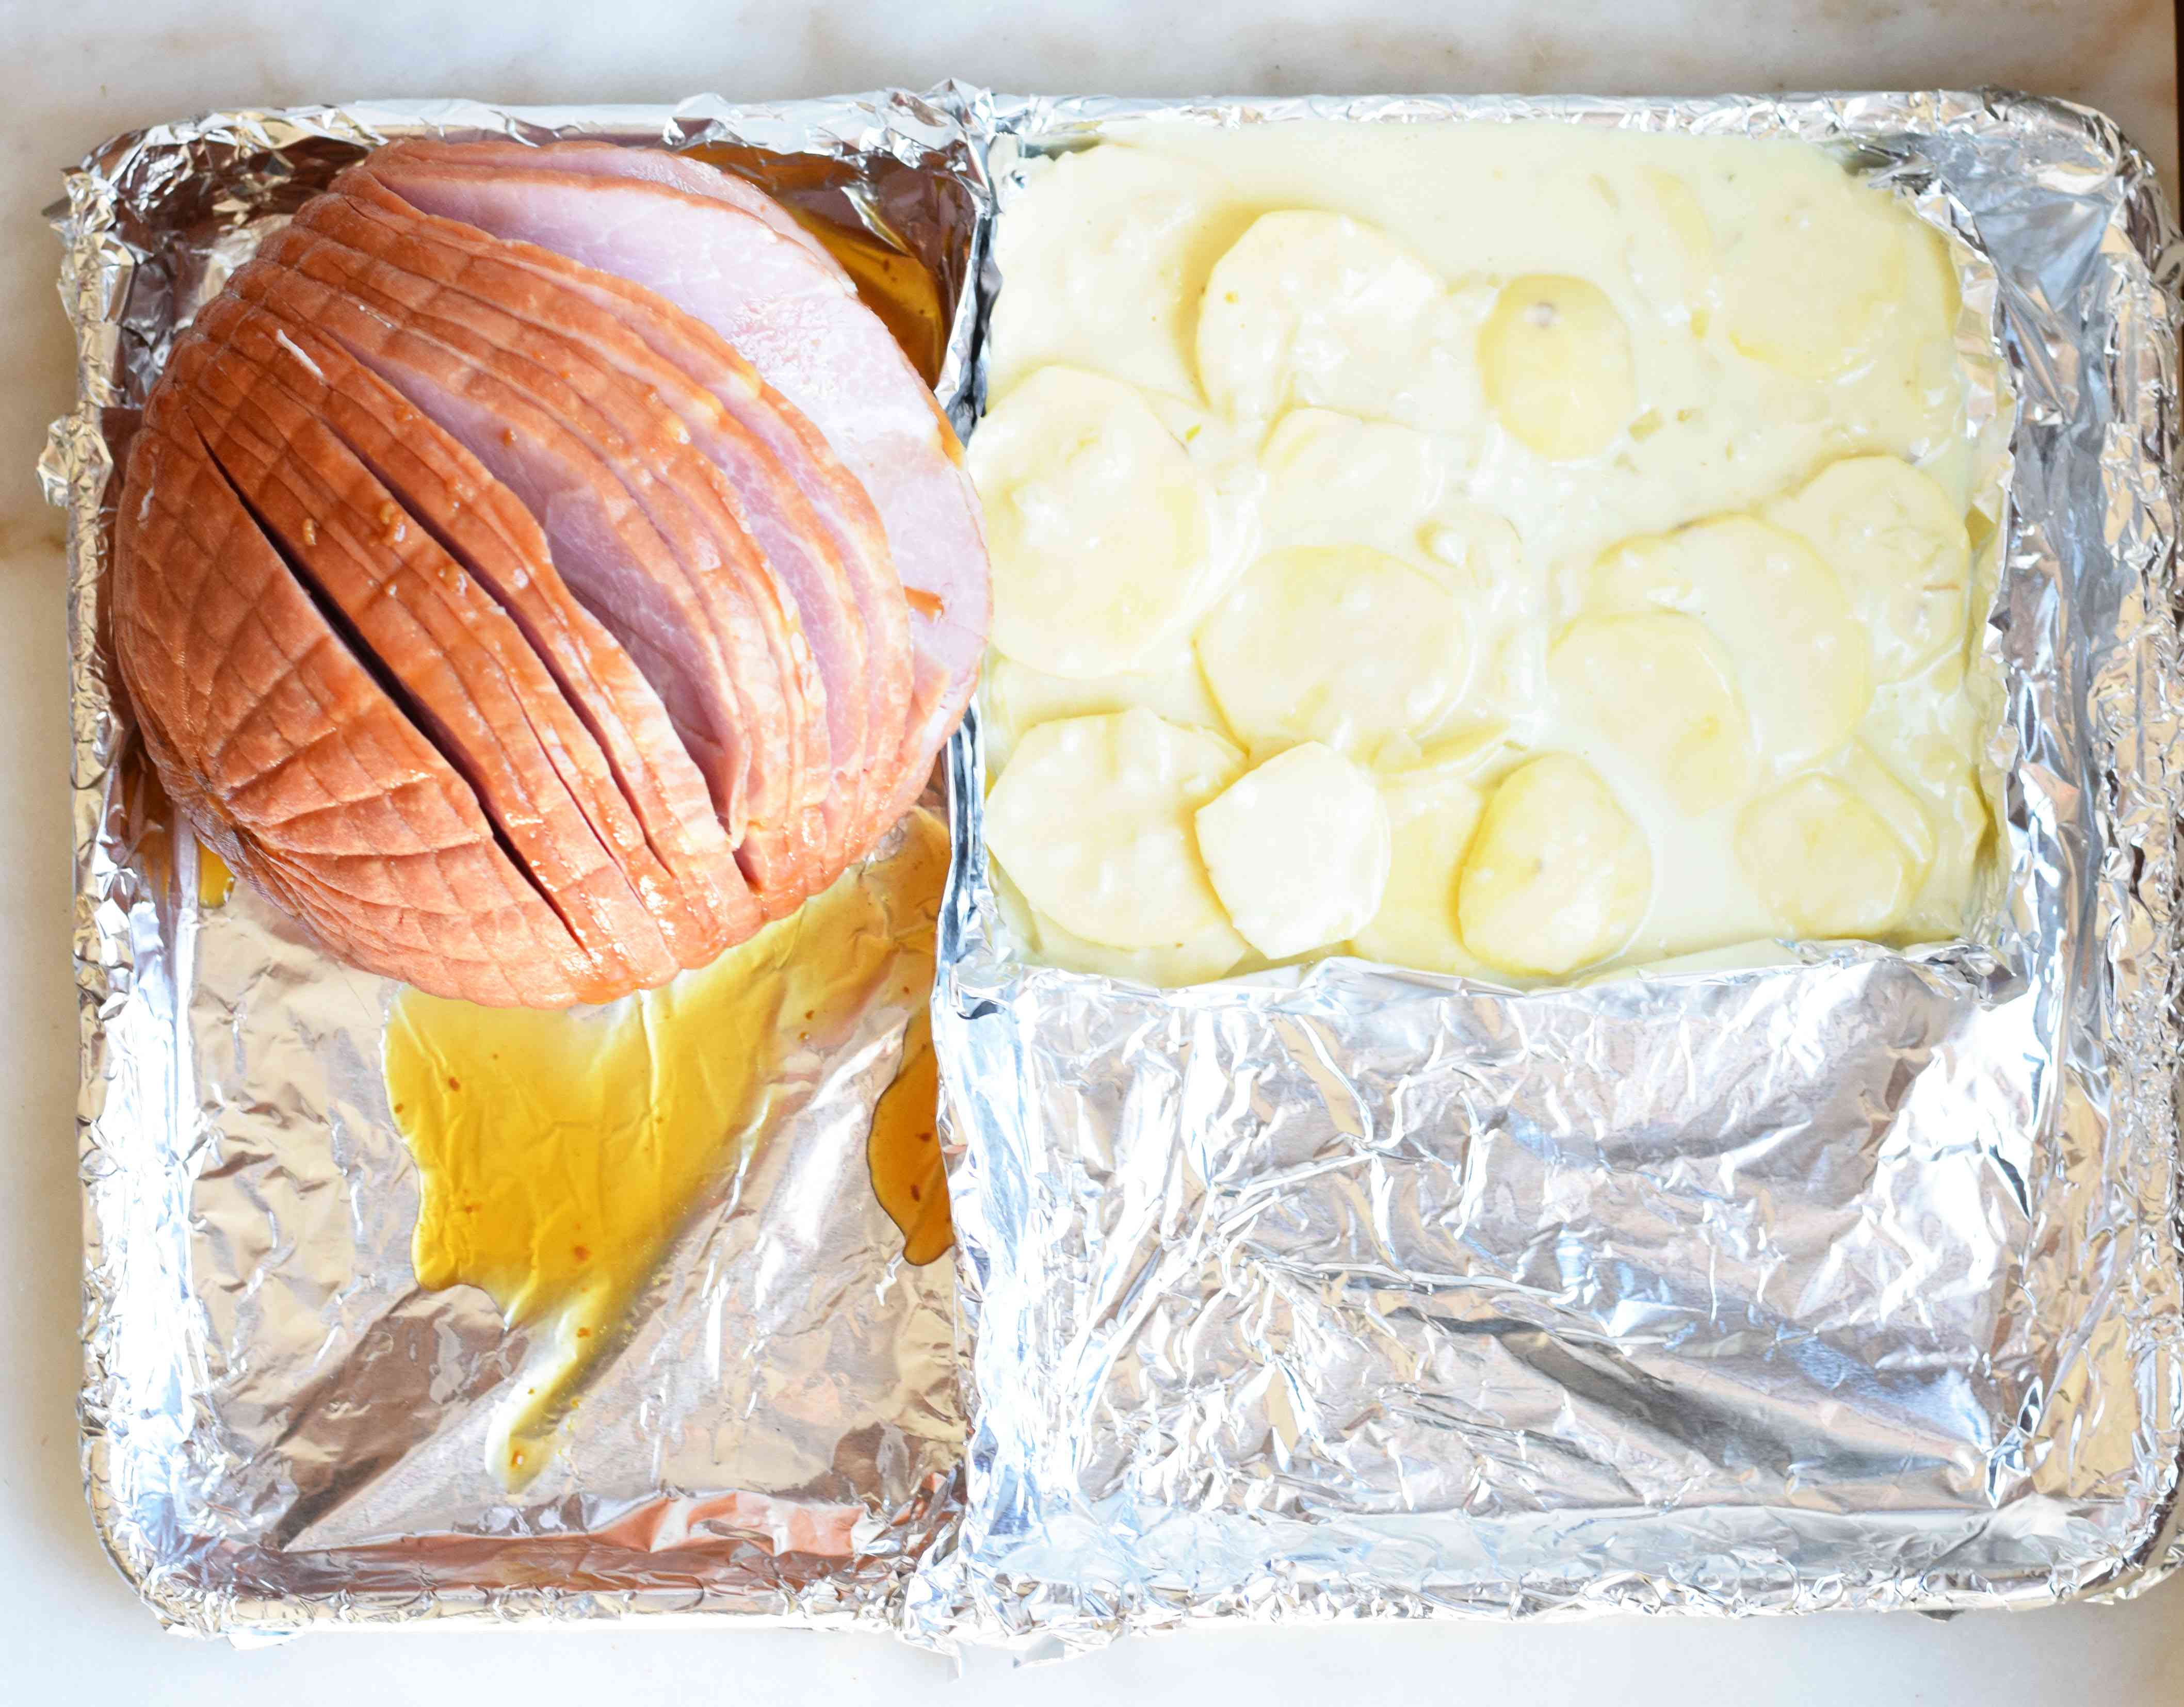 Ham and potatoes in a foil-lined sheet pan